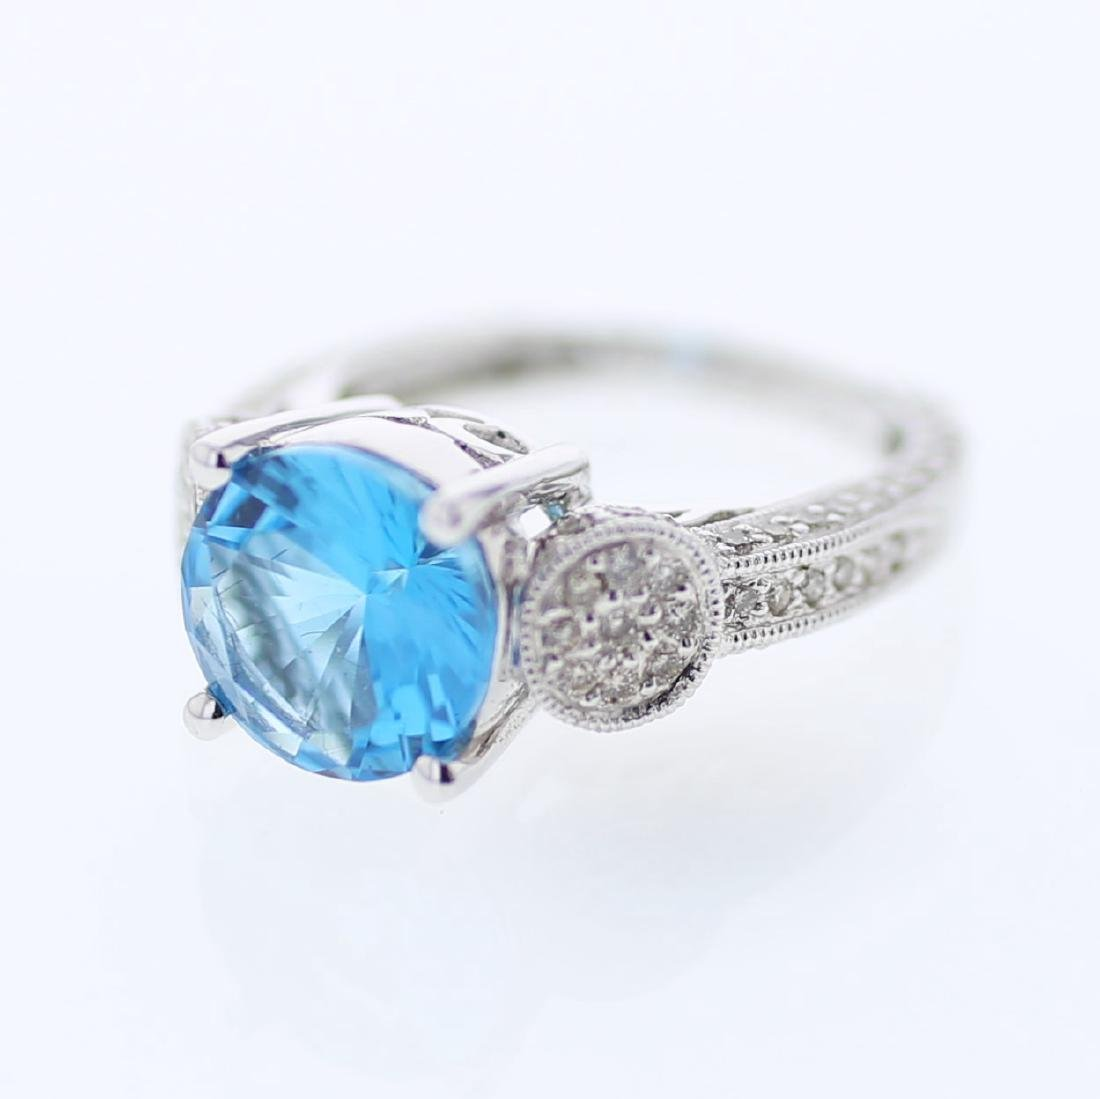 4.8 CTW Topaz Fashion  Ring in 18K White Gold